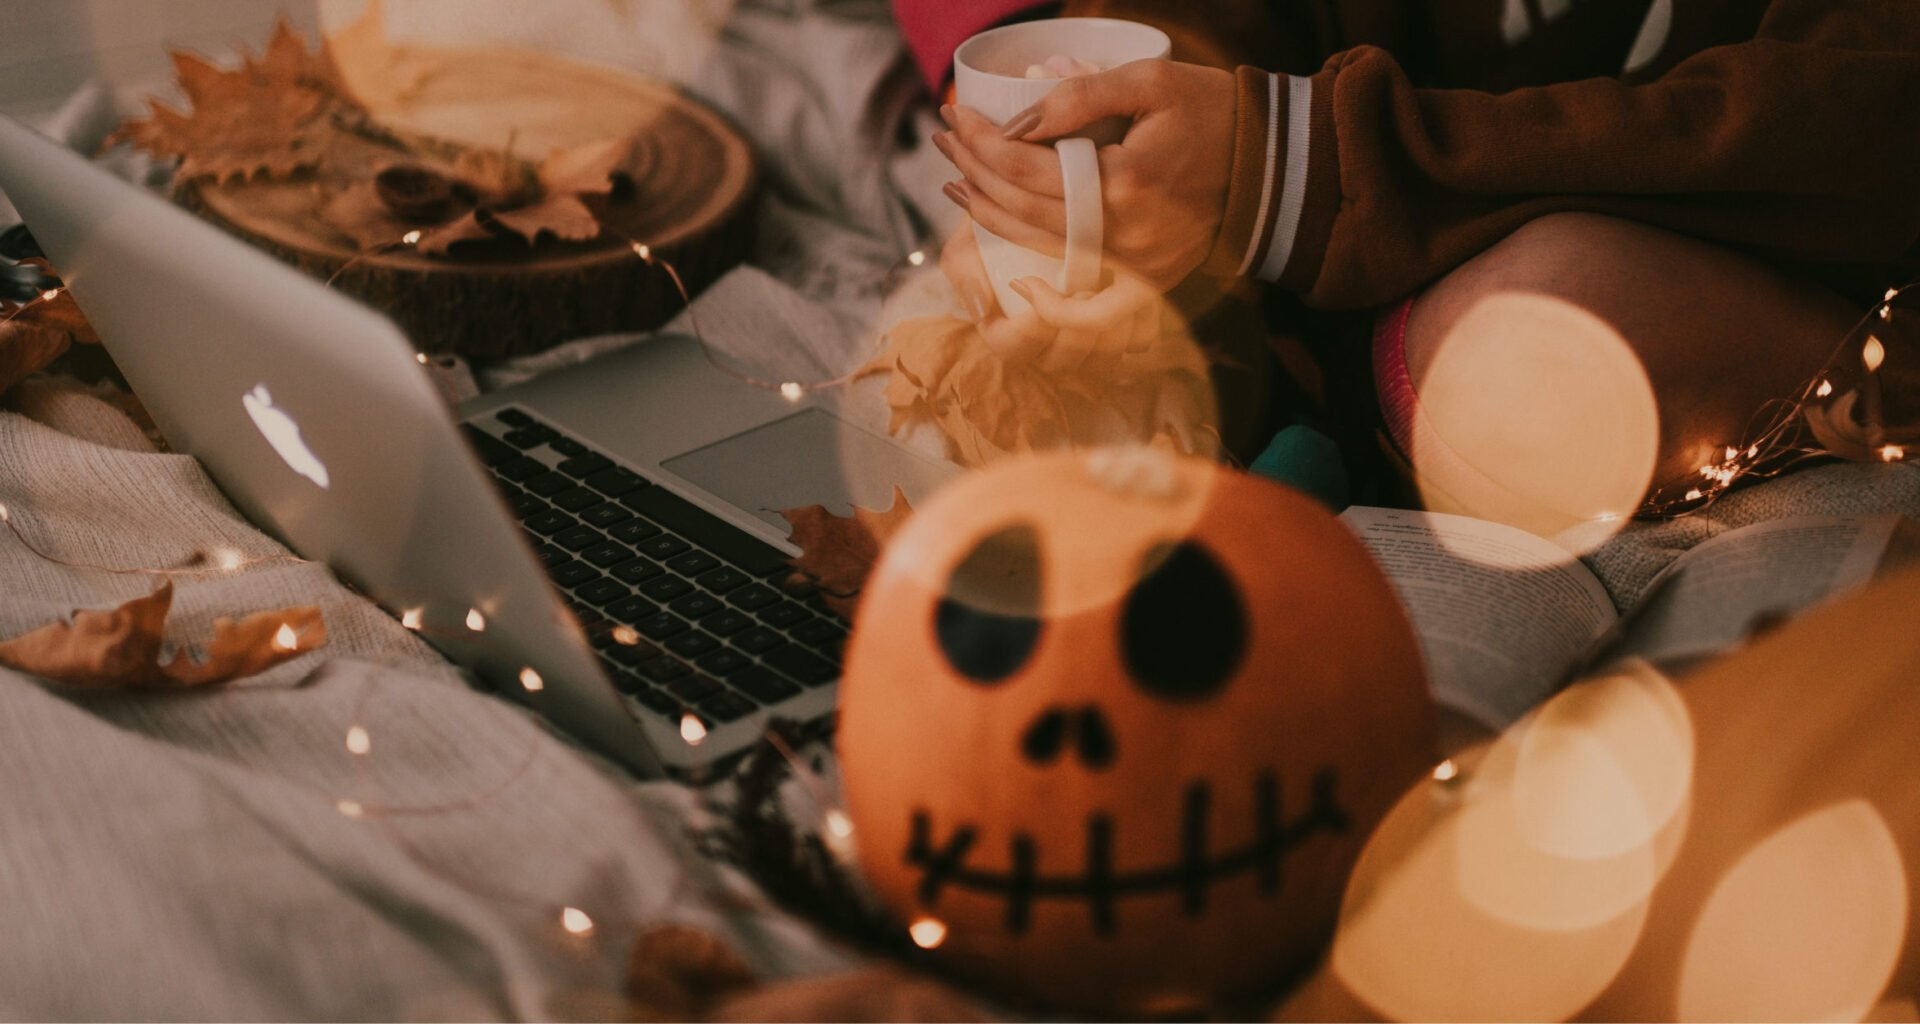 student using laptop on bed surrounded by Halloween decor and pumpkin with face drawn on